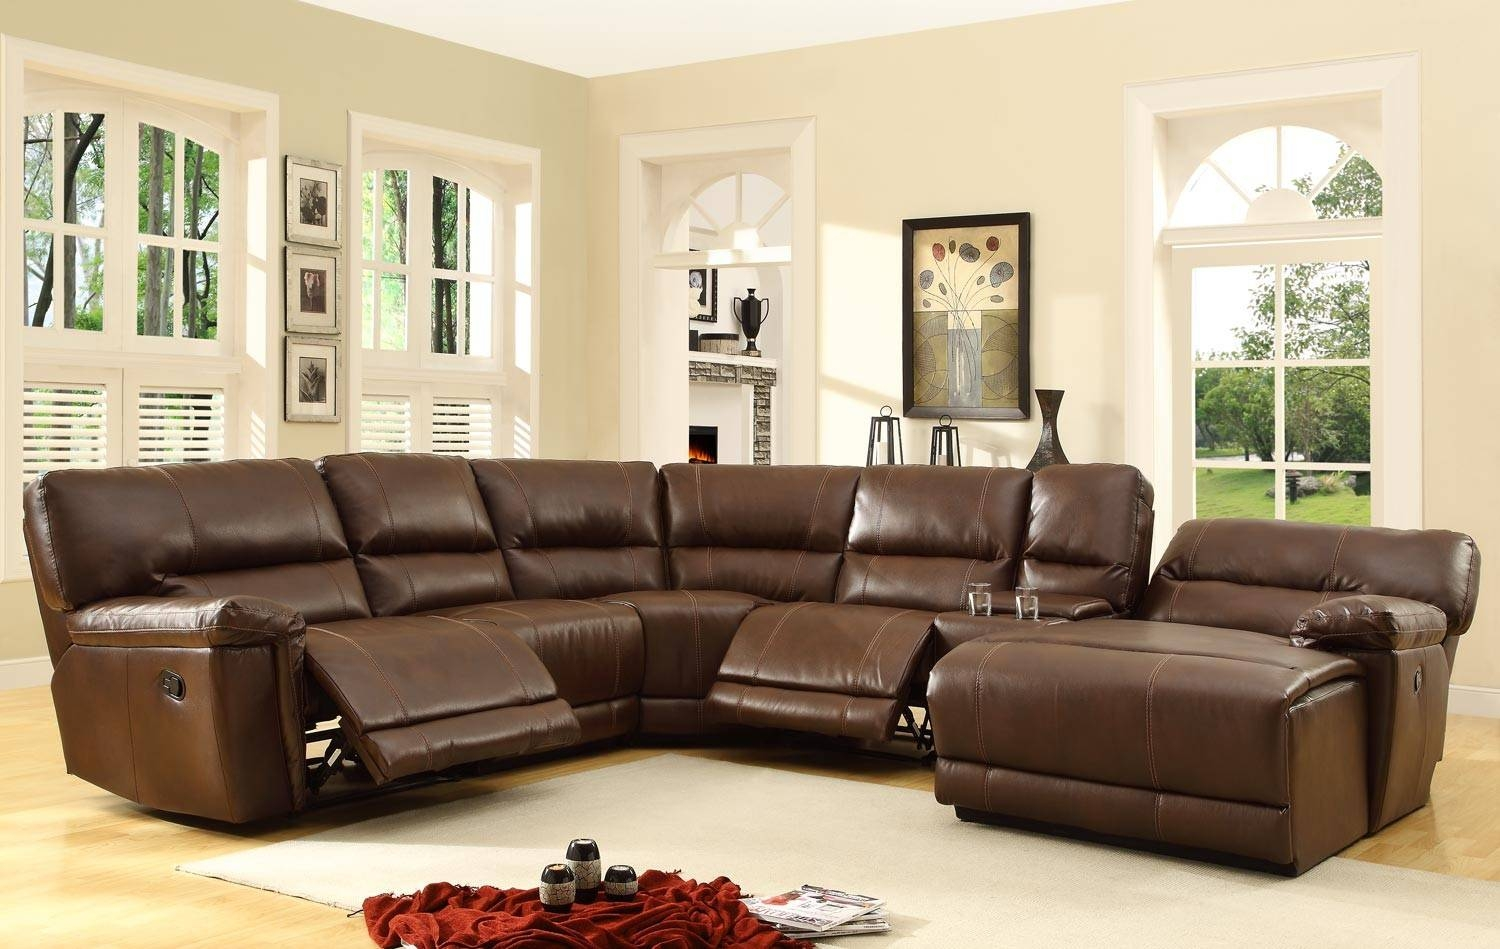 Sofas Center : Leather Sectional Sofa With Recliner He U9606 Intended For Sectional Sofa Recliners (View 26 of 30)